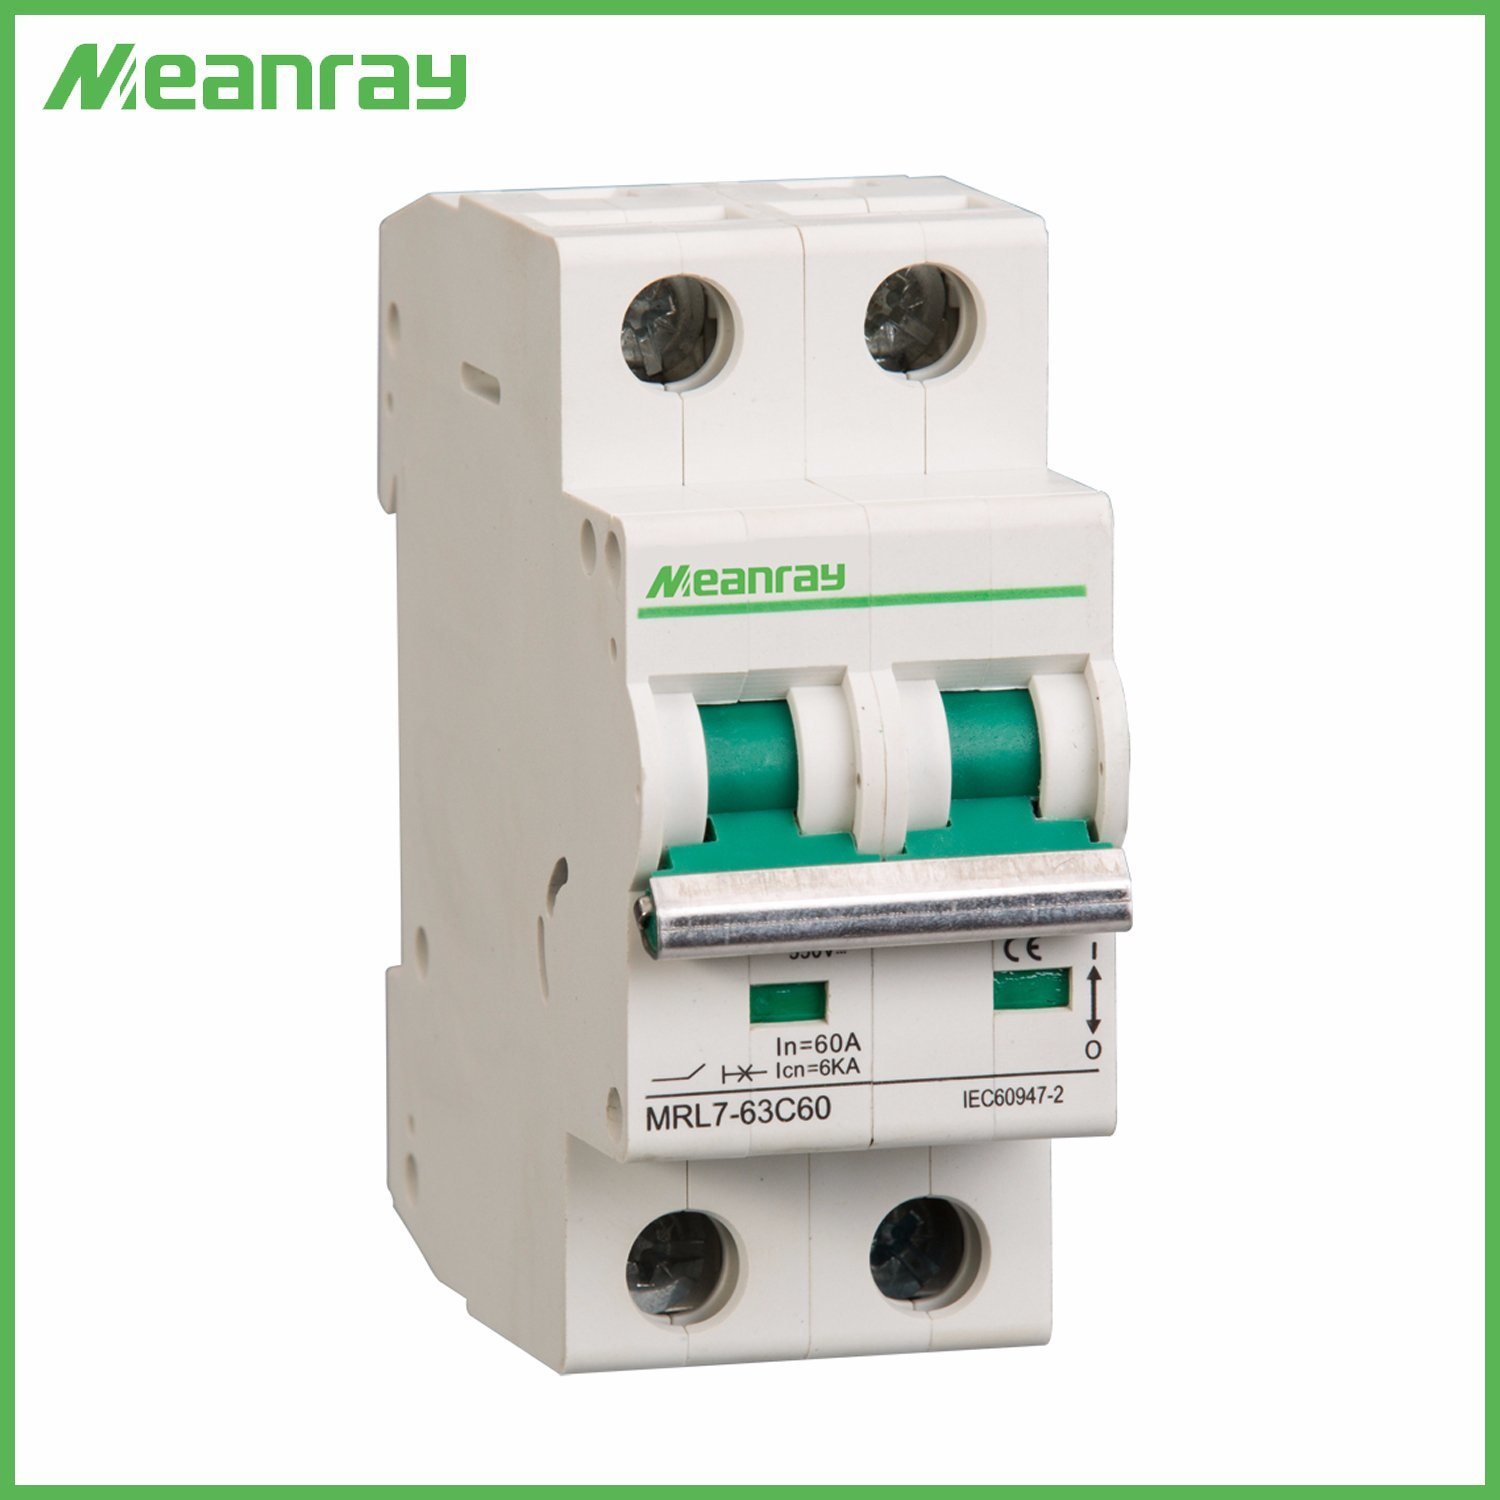 Prime Hot Item Meanray Single Phase Types Circuit Protector 250V Mini Circuit Breaker Switch Dc Mcb 63A Wiring Digital Resources Funapmognl